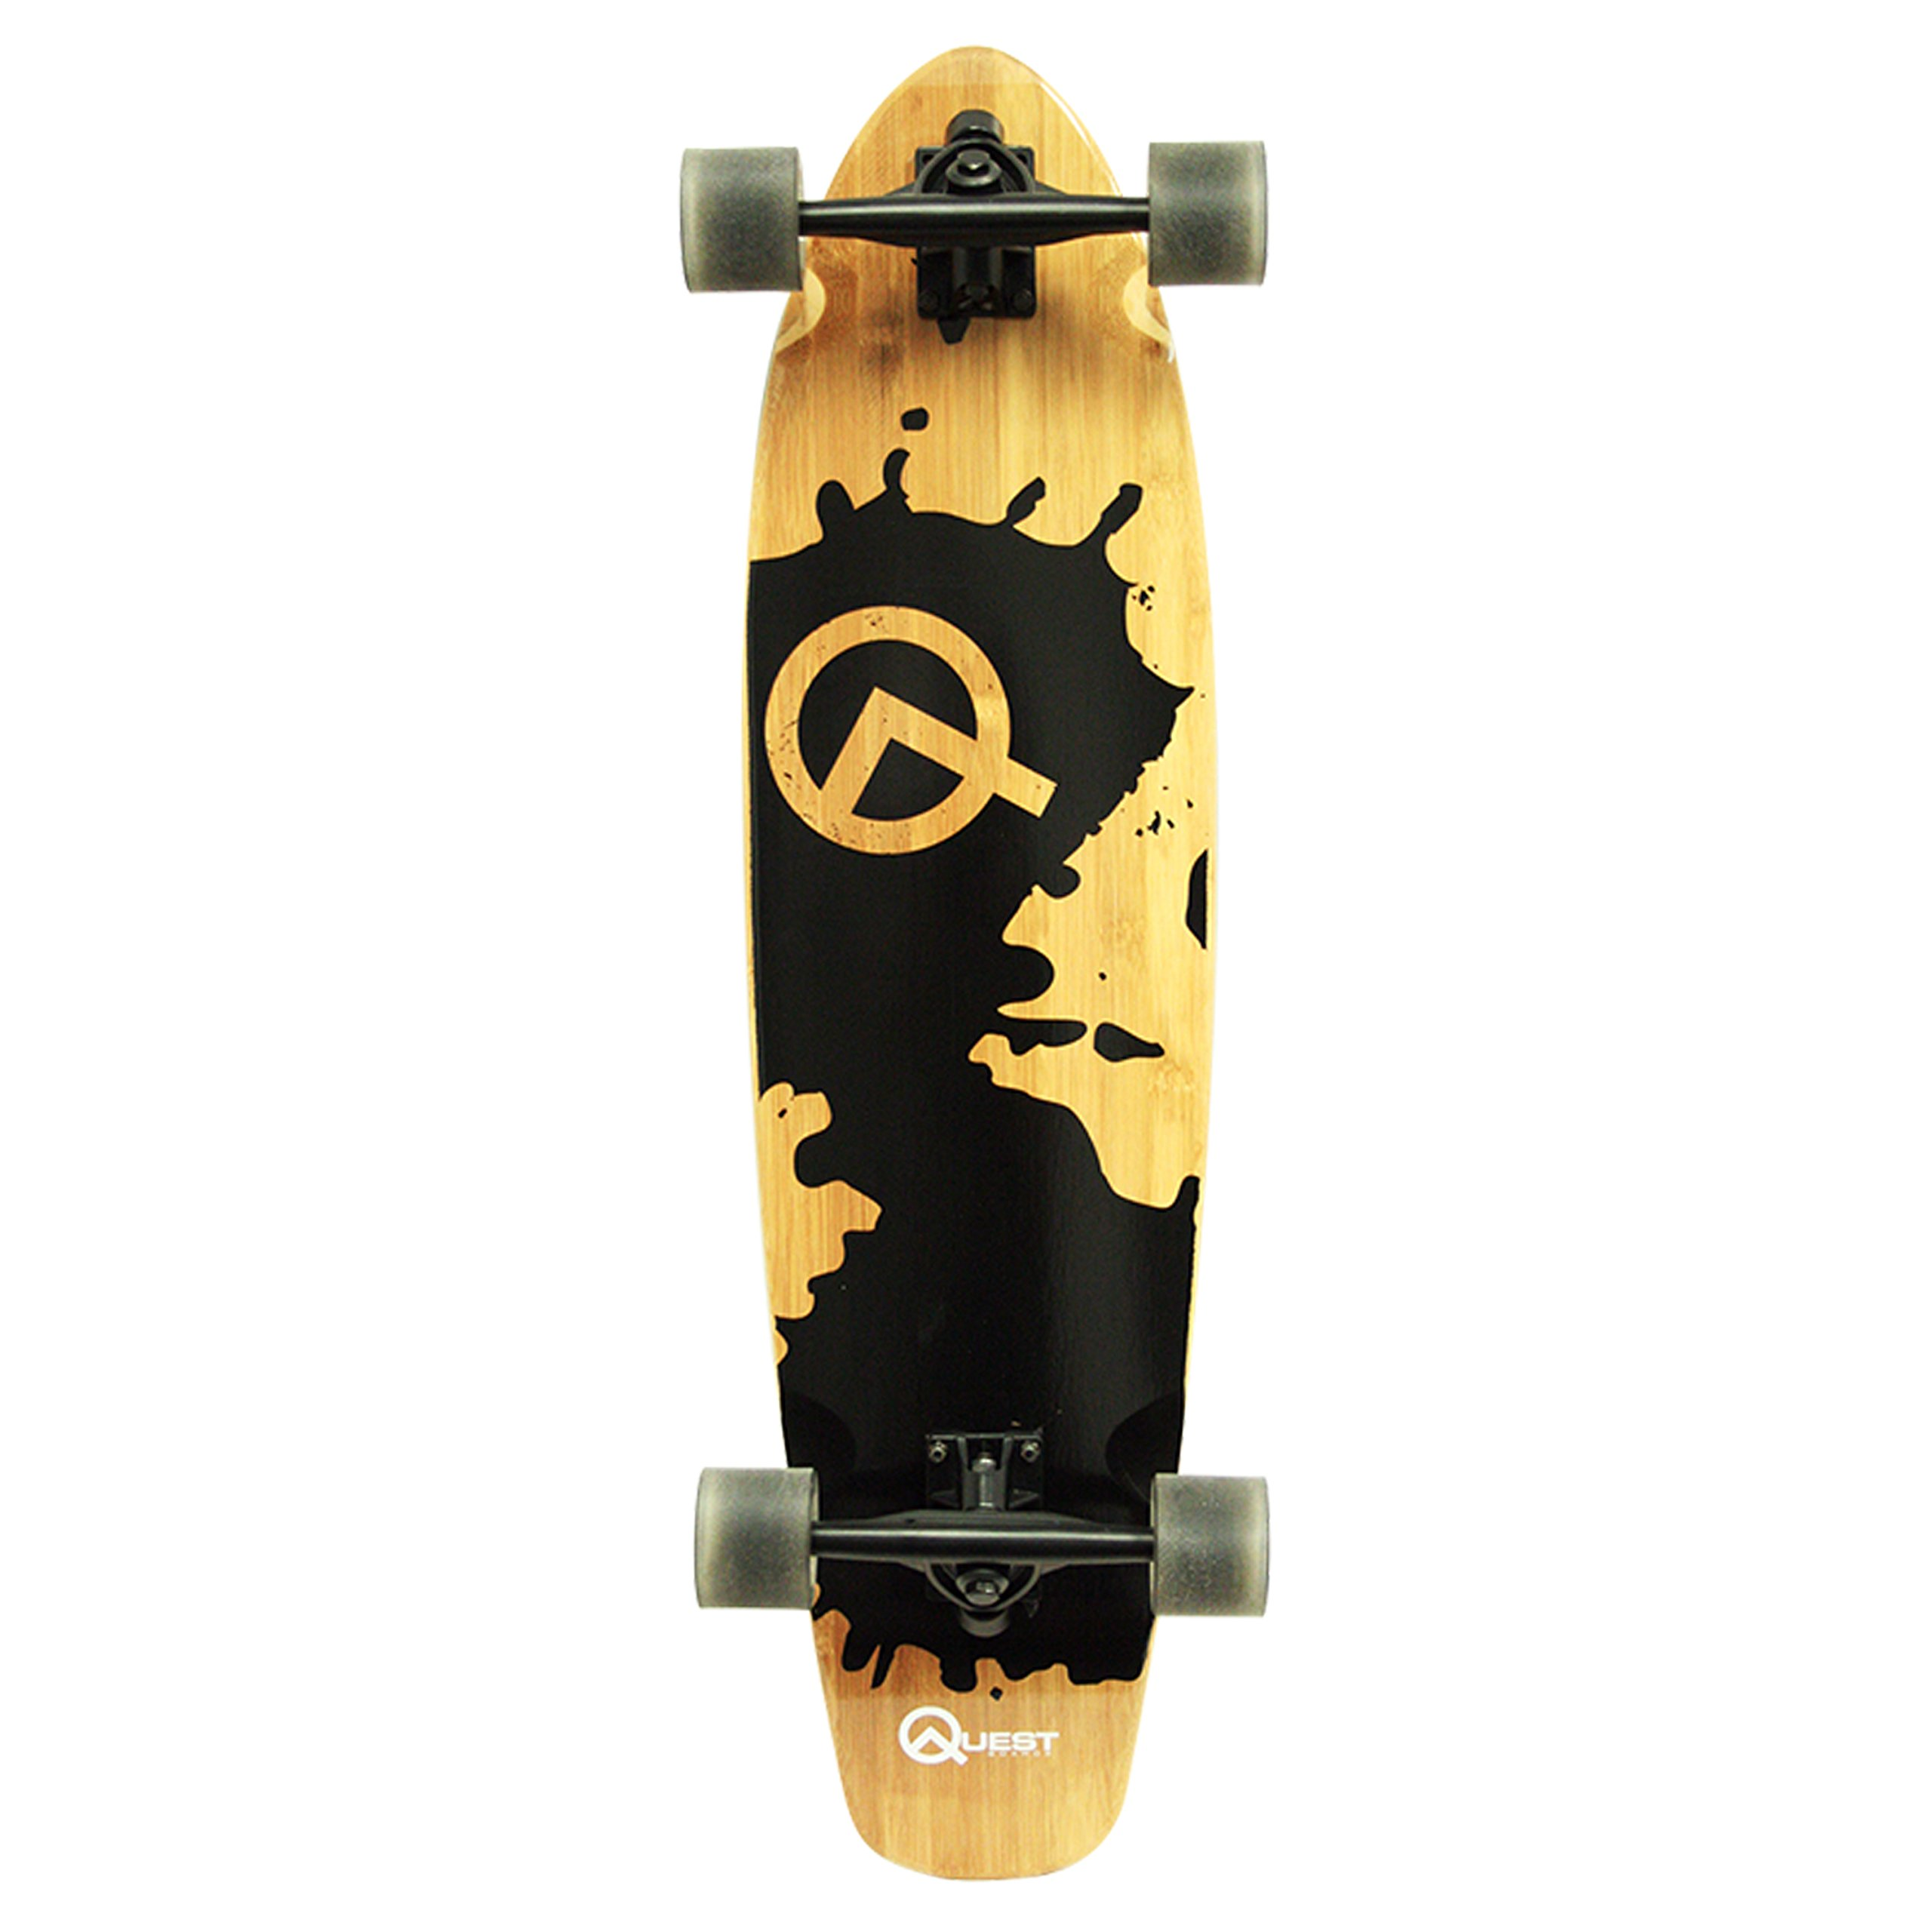 Quest Rorshack Bamboo Longboard Skateboard (34-Inch) by Quest